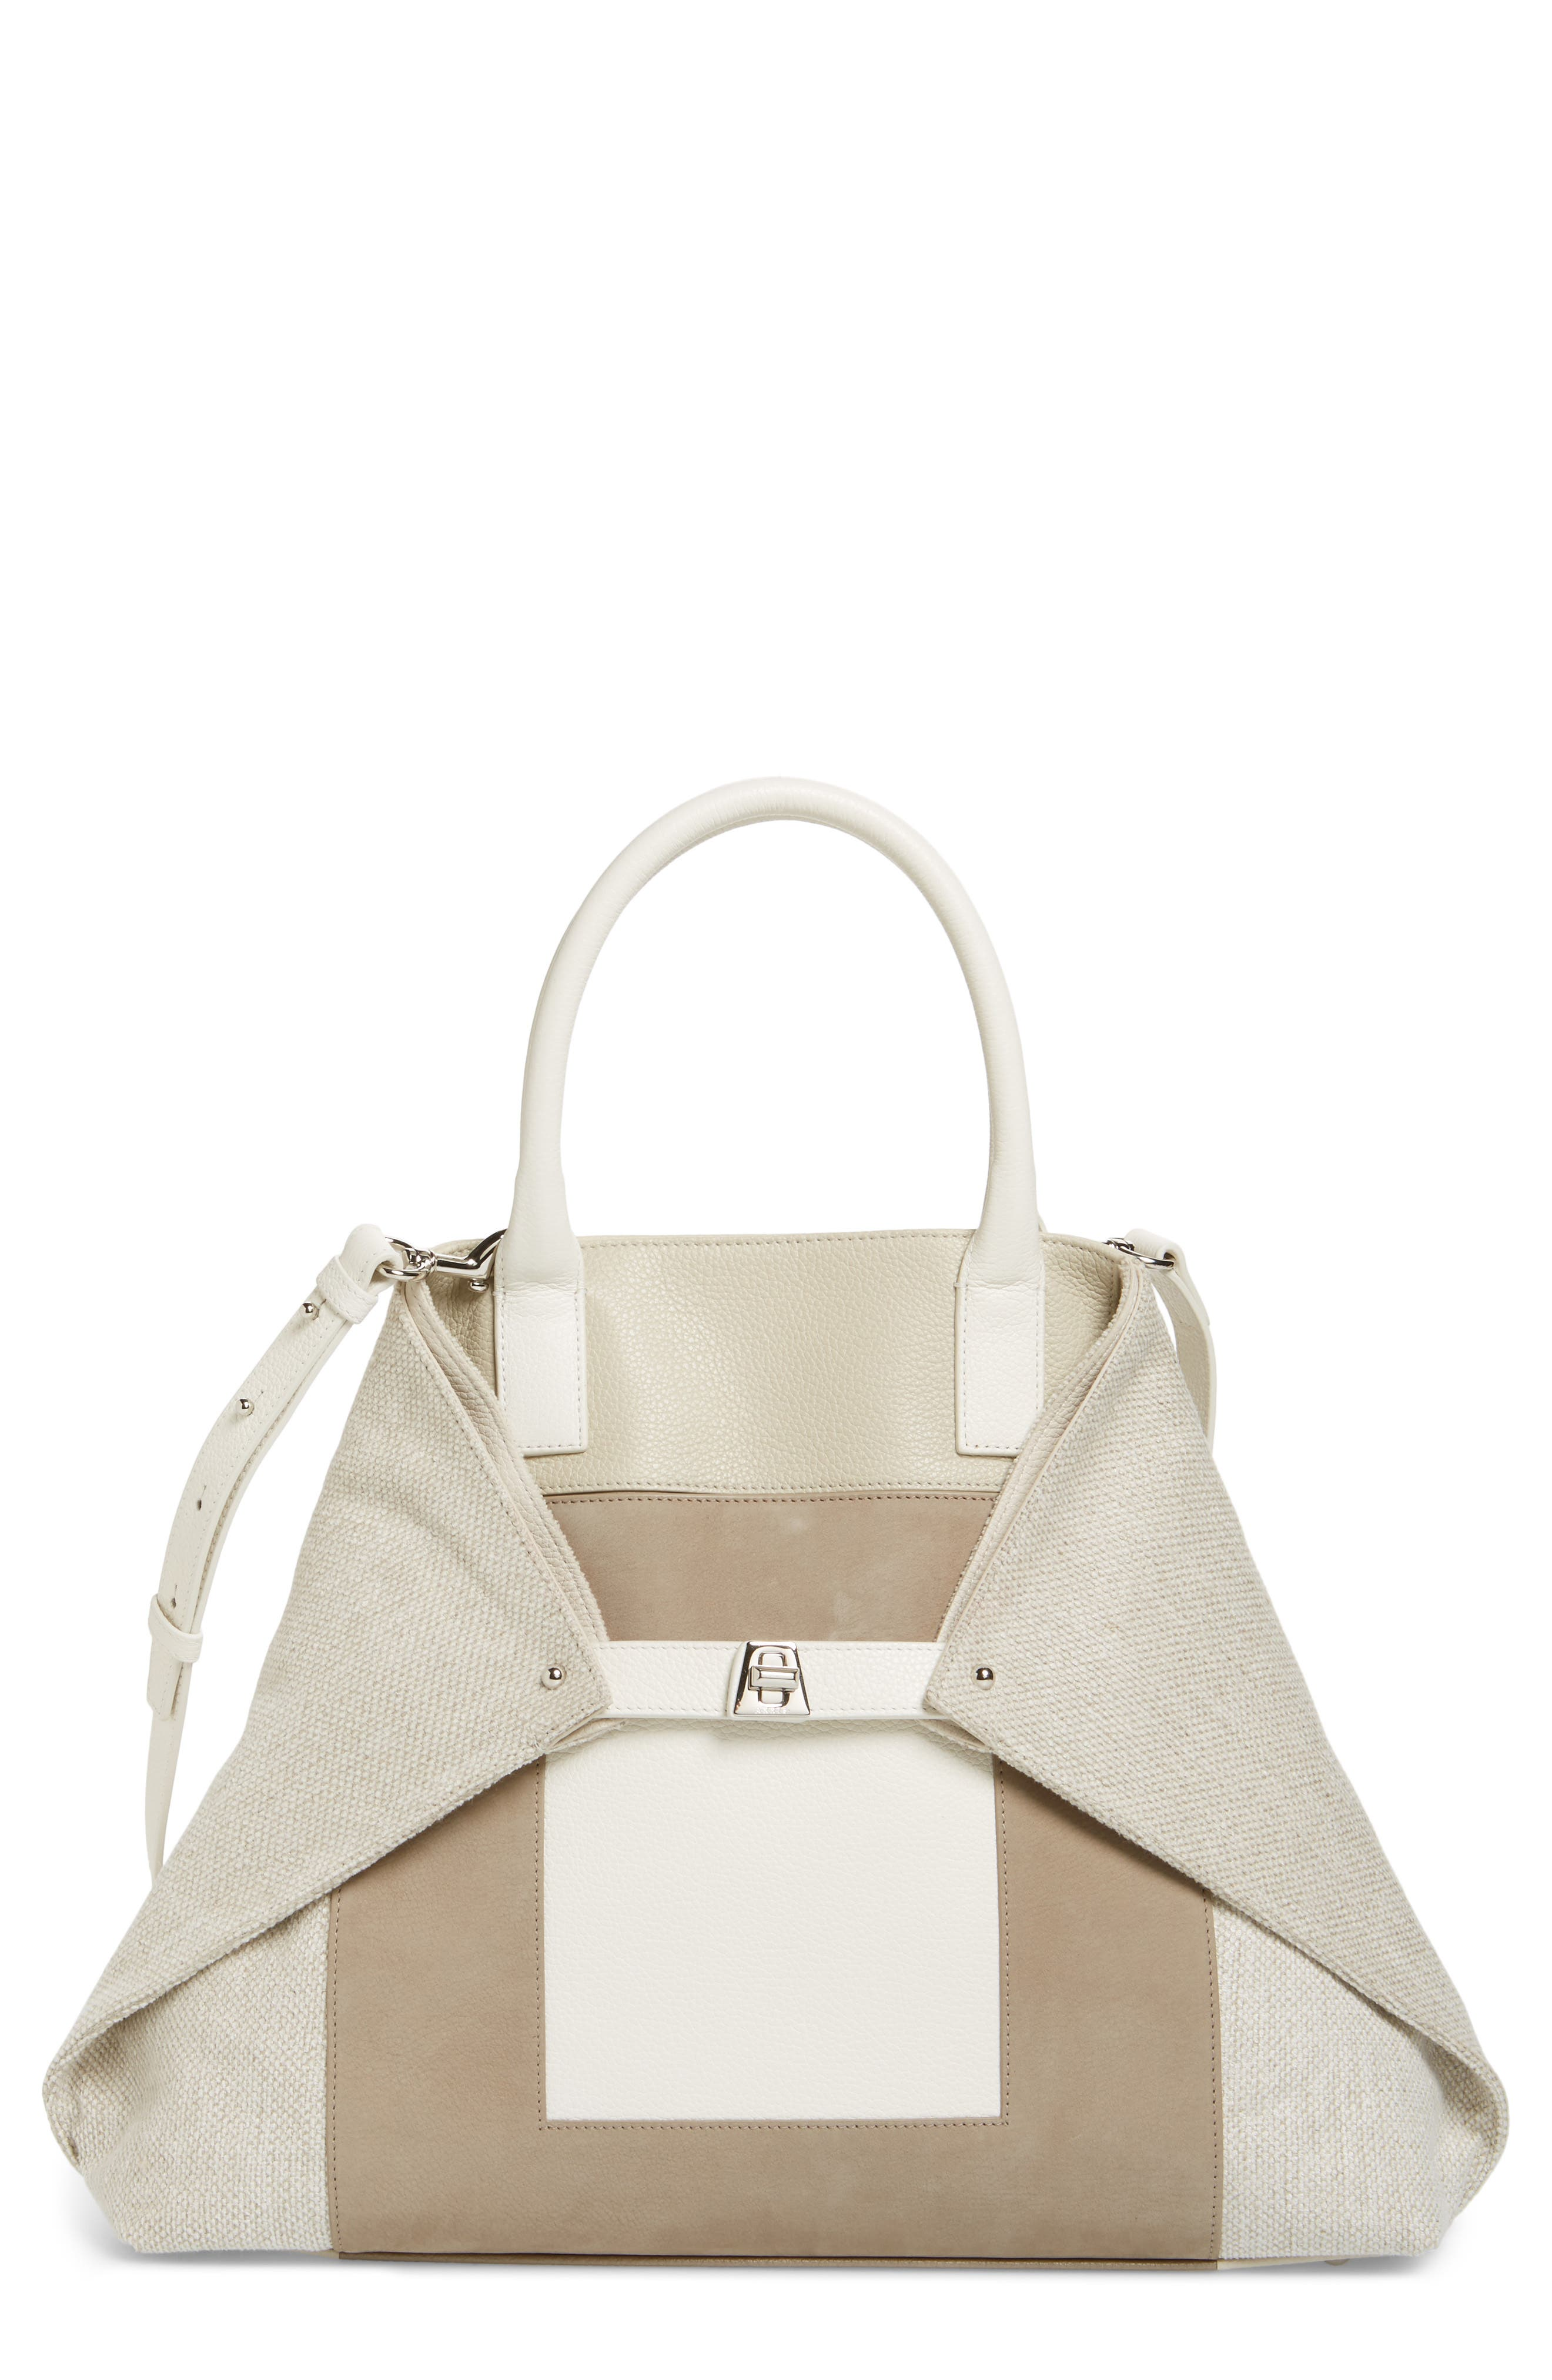 Medium AI Leather & Canvas Tote,                         Main,                         color, 283